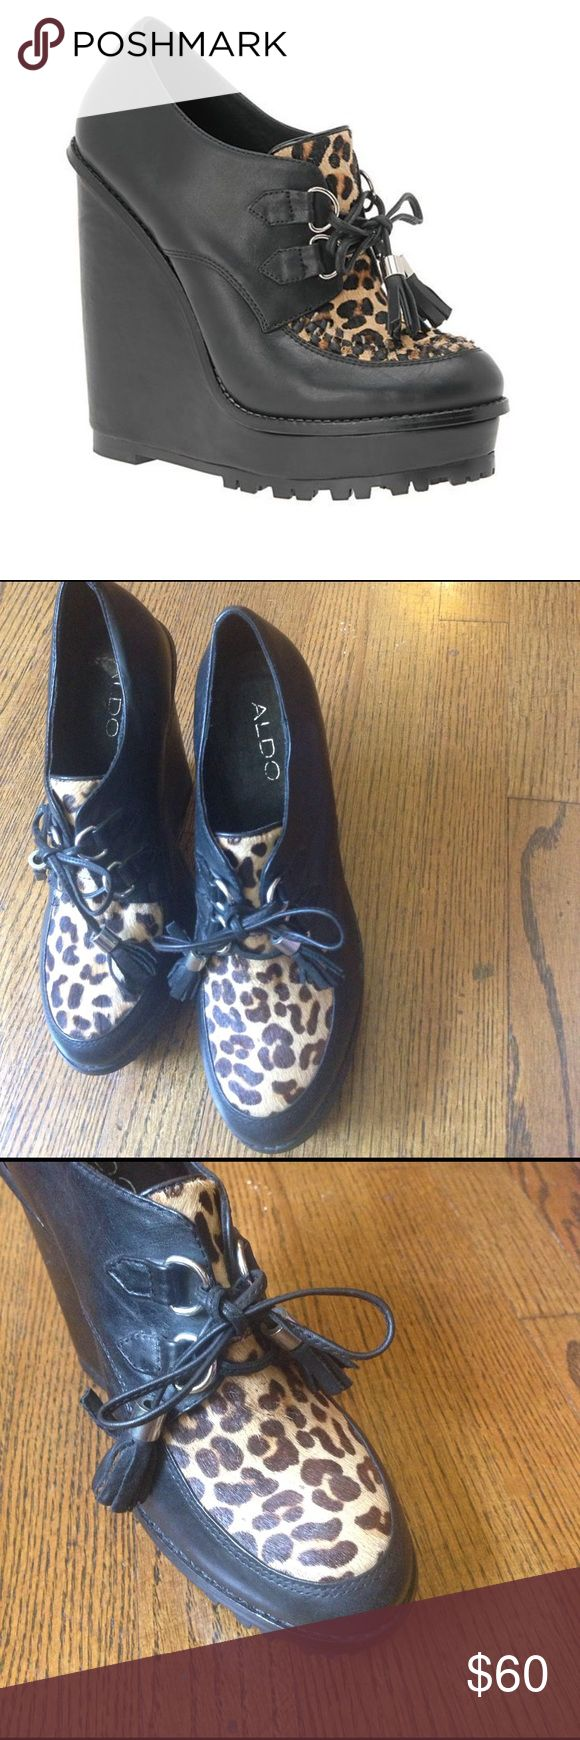 Aldo Roder Leopard Print Wedge Platform Shoes Gently worn with minor scuffs on wedge high platform wedge heels. So fun and cute. Perfect for fall. Aldo Shoes Platforms